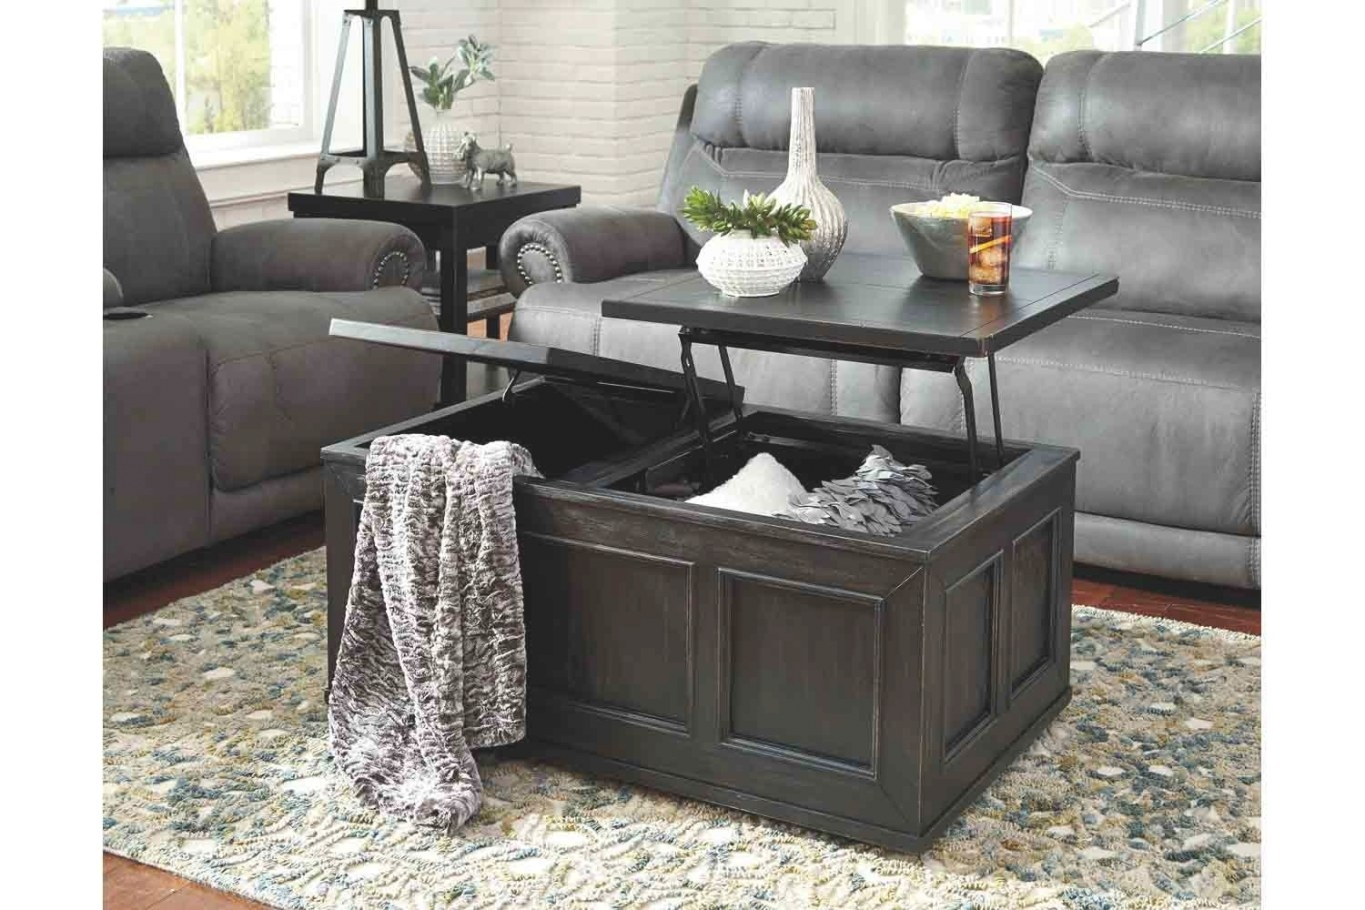 Gavelston Lift-Top Coffee Table | Mor Furniture For Less in Lift Top Coffee Tables